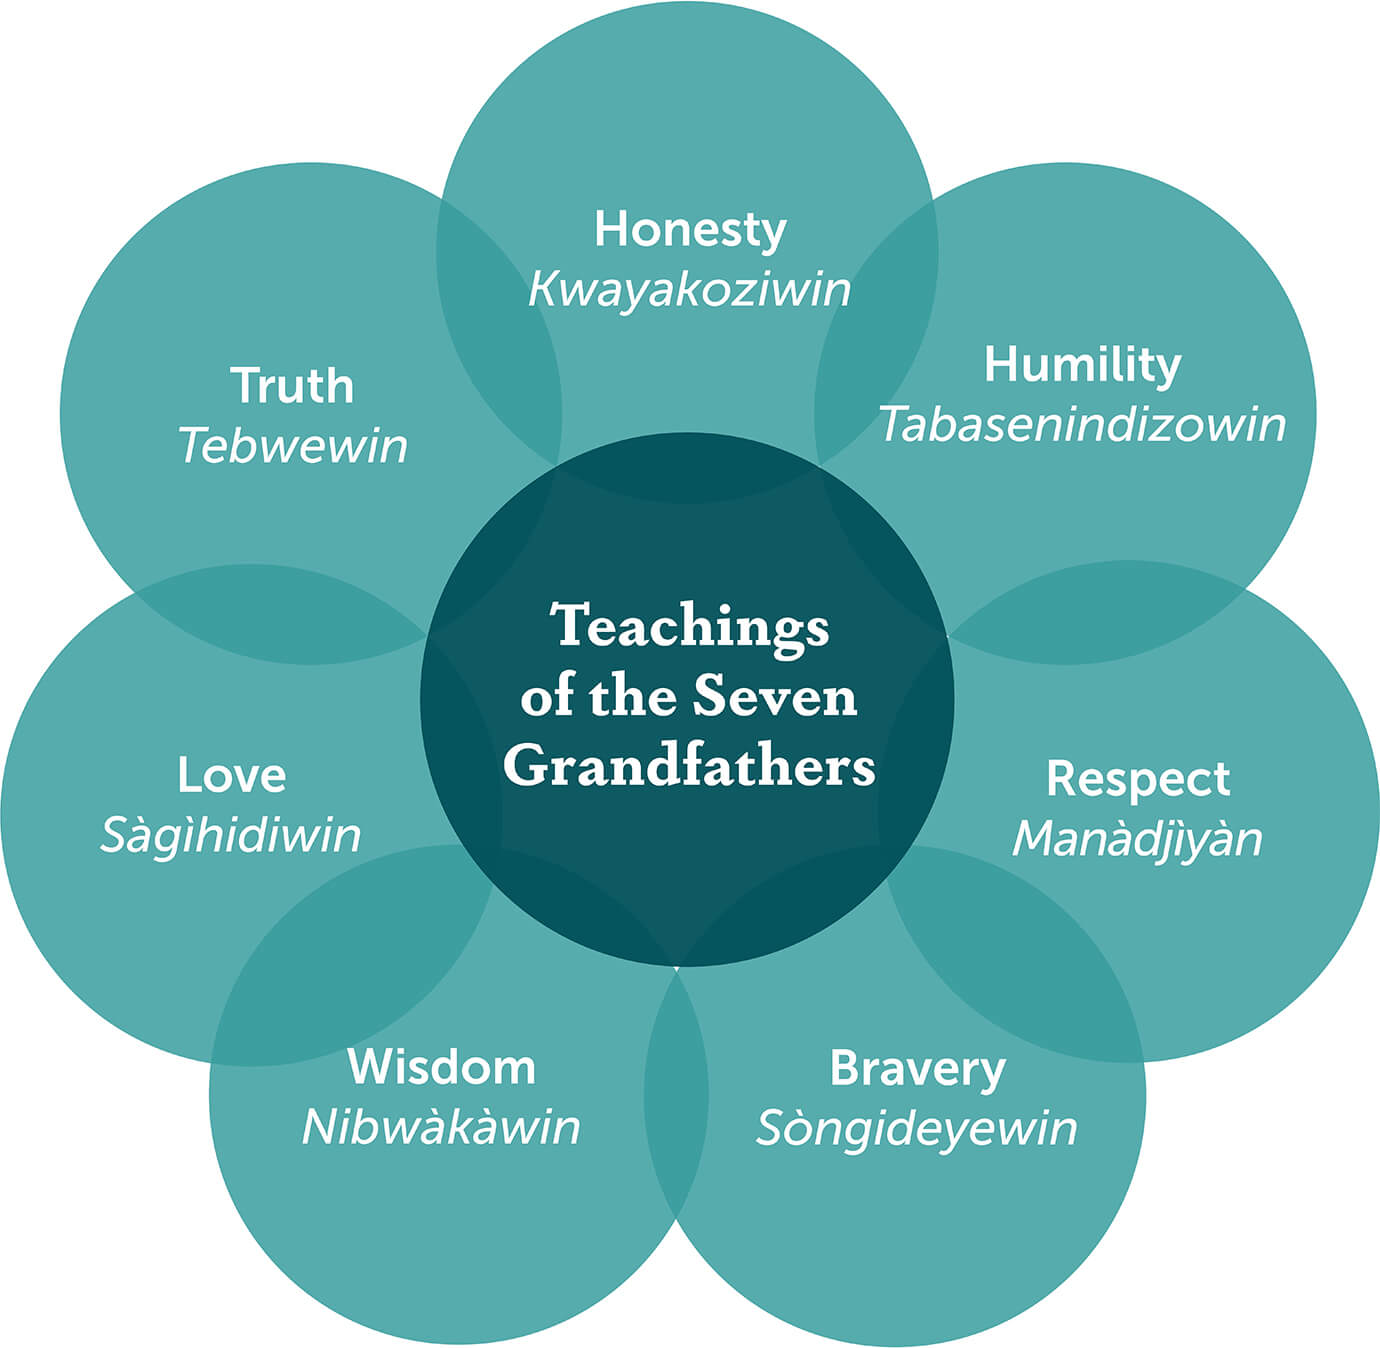 Teachings of the Seven Grandfathers: Honesty, Humility, Respect, Bravery, Wisdom, Love, and Truth